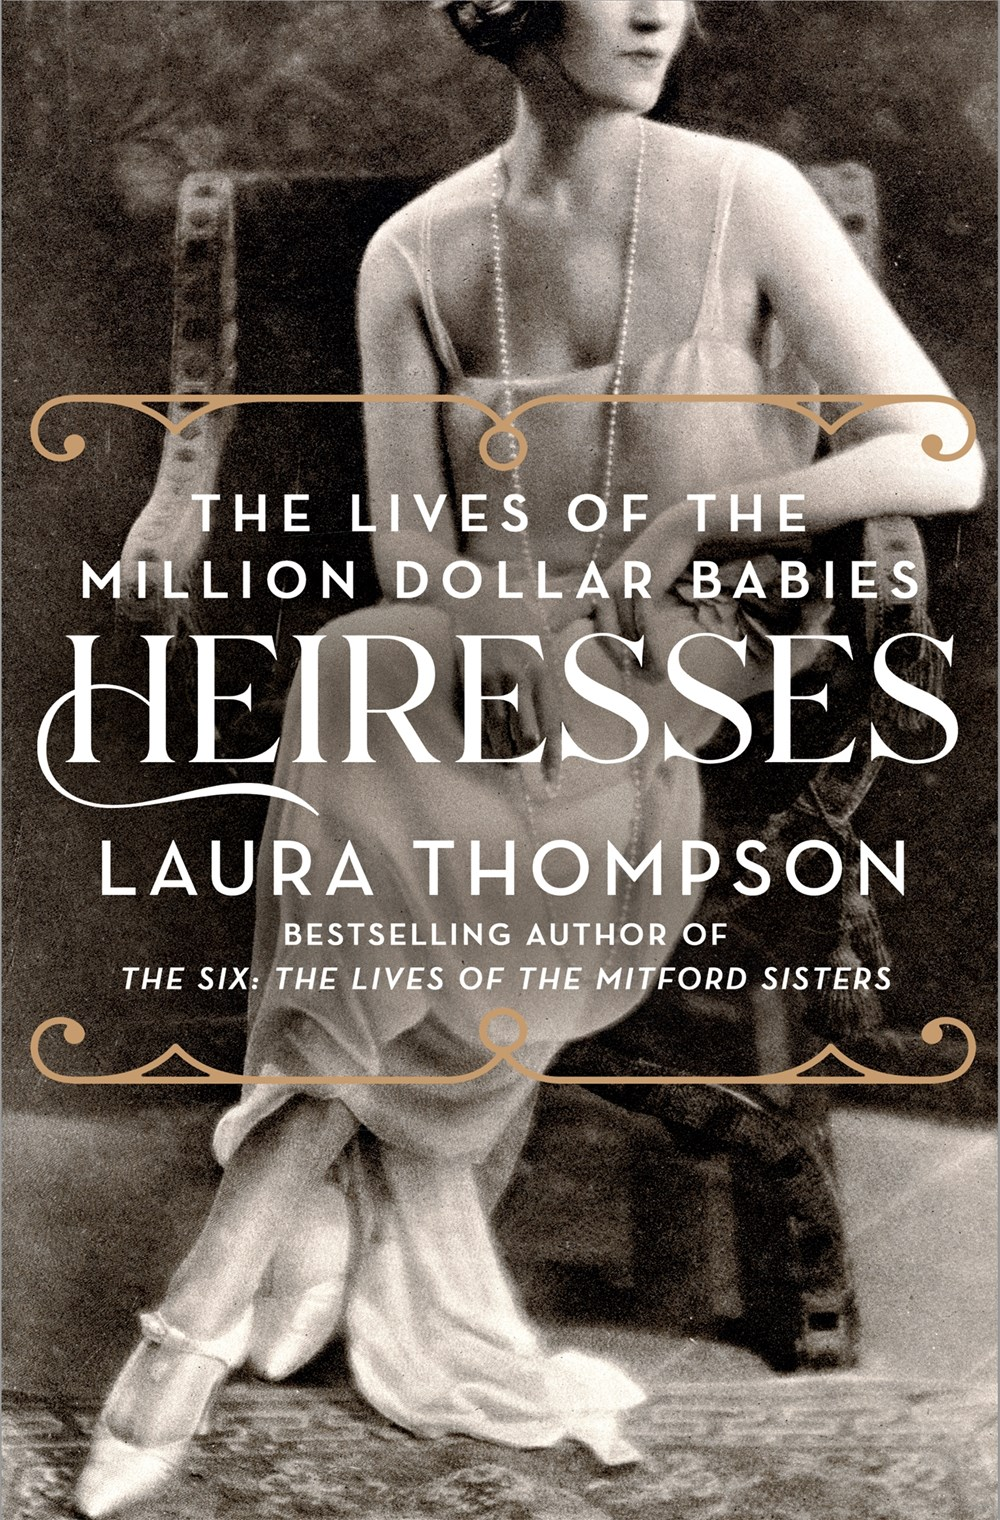 Heiresses cover image